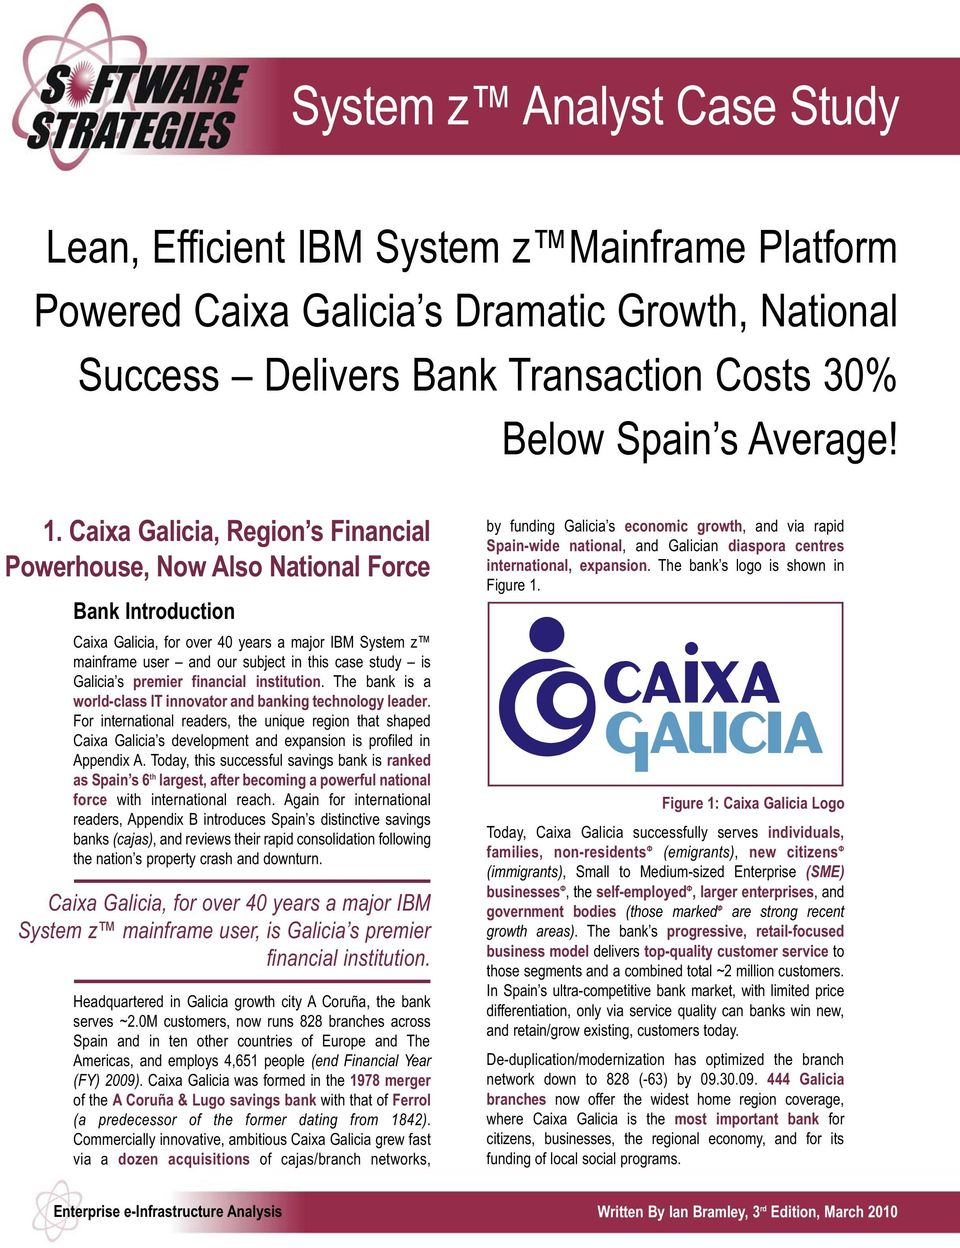 Galicia s premier financial institution. The bank is a world-class IT innovator and banking technology leader.